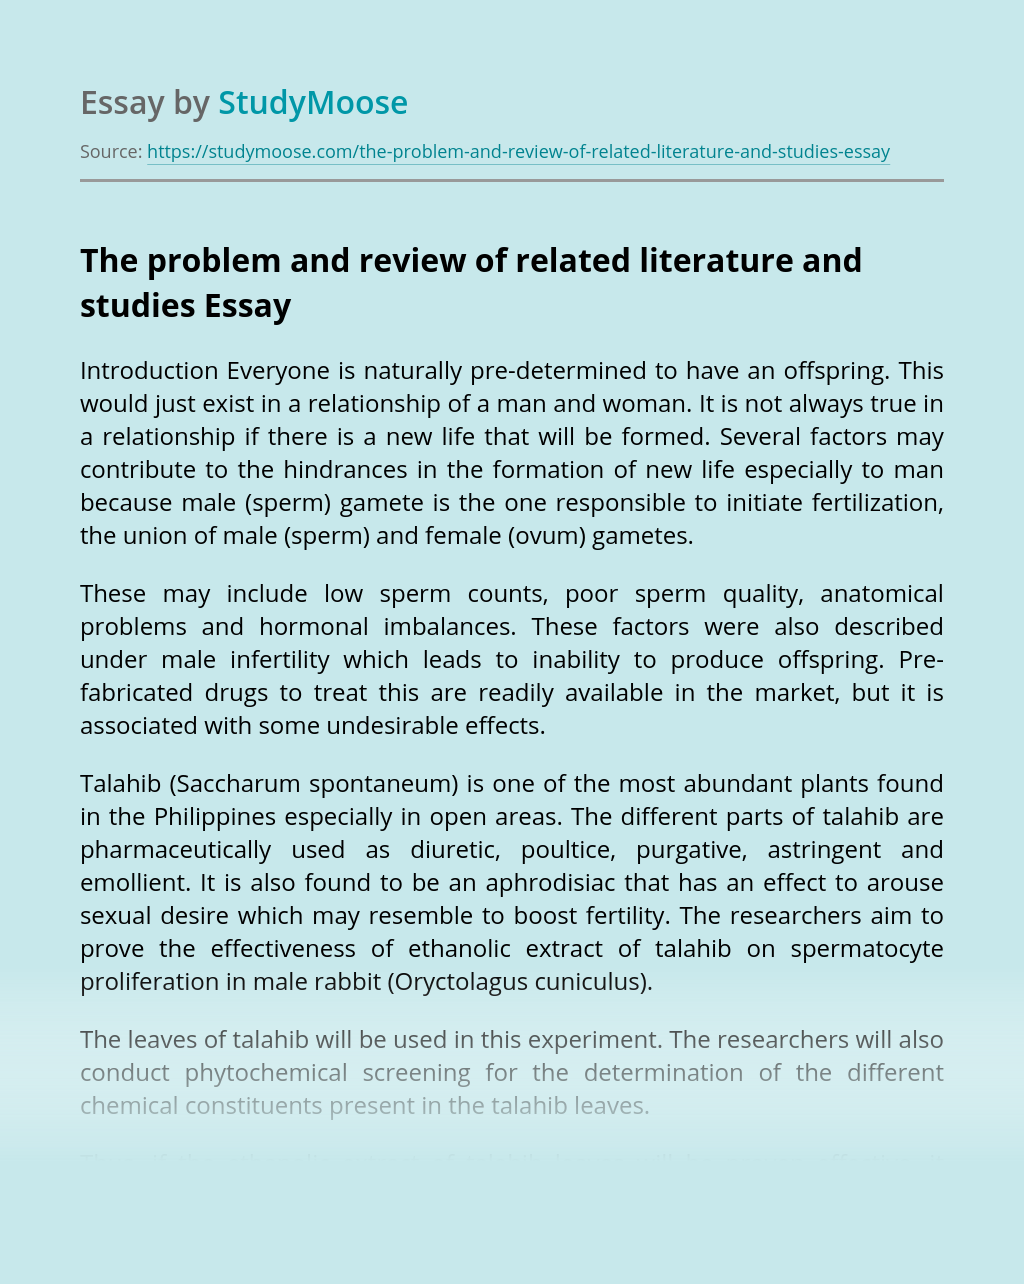 The problem and review of related literature and studies